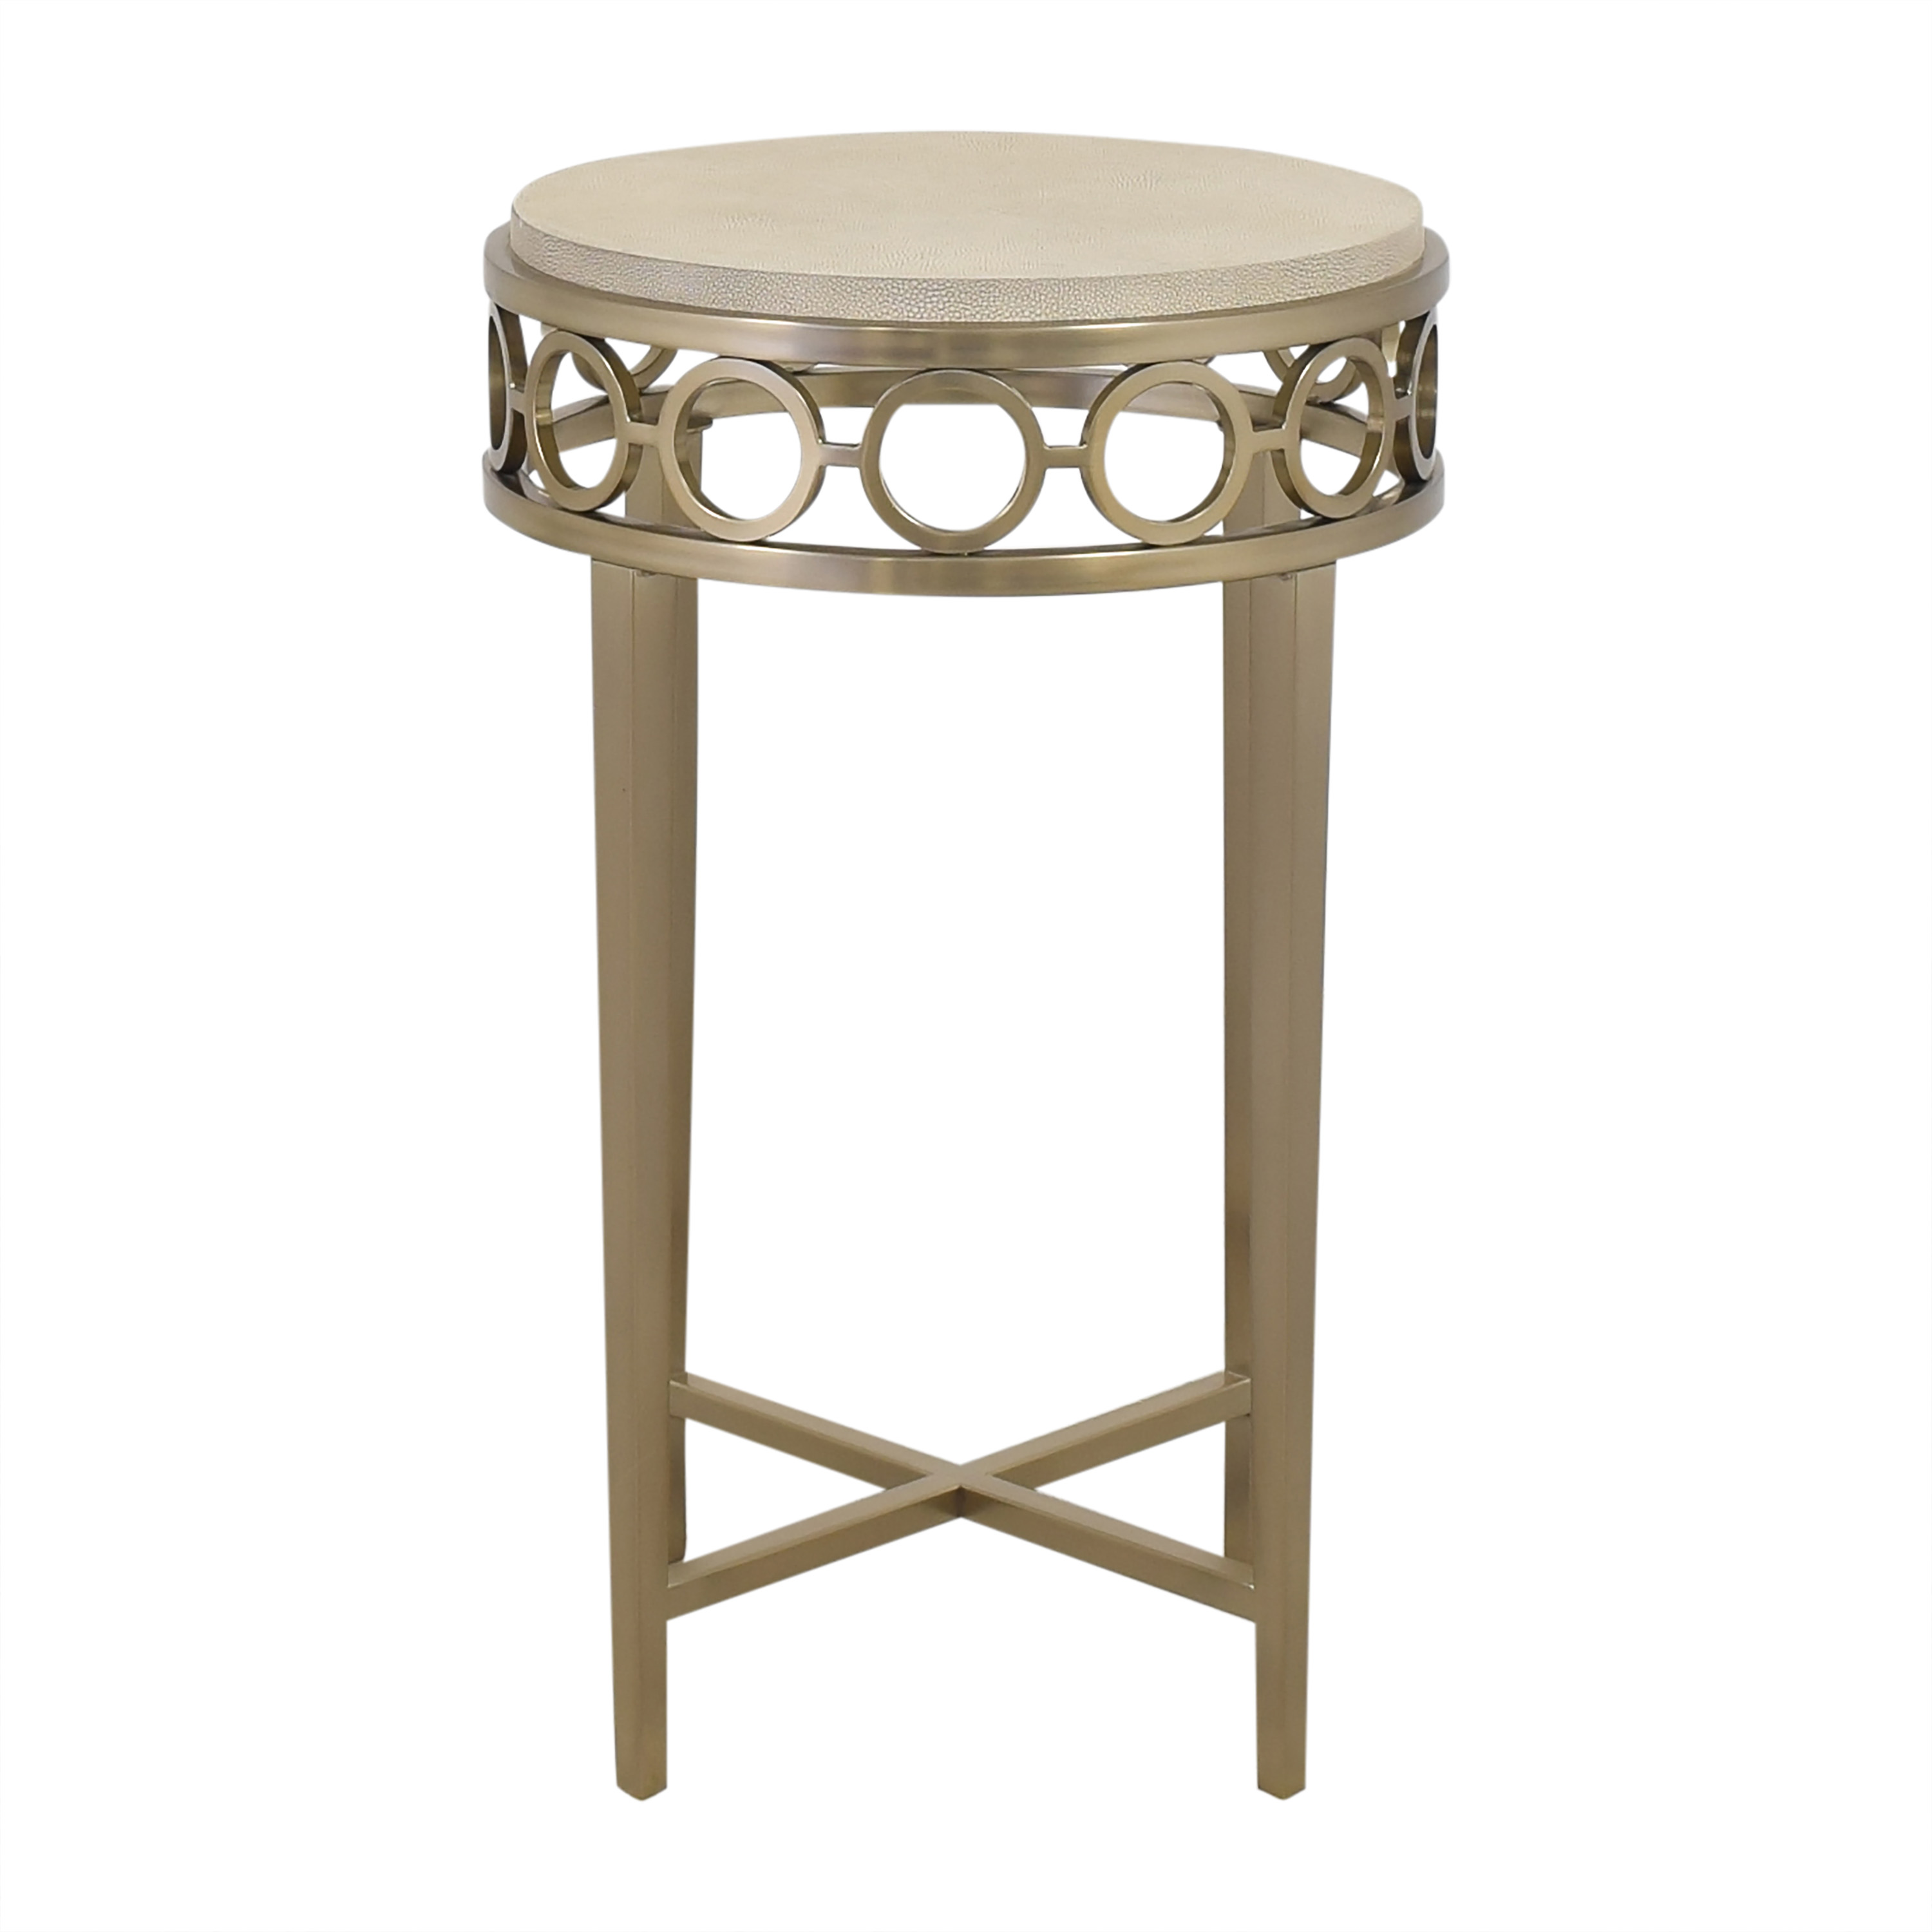 Bernhardt Round Chairside Table / Tables